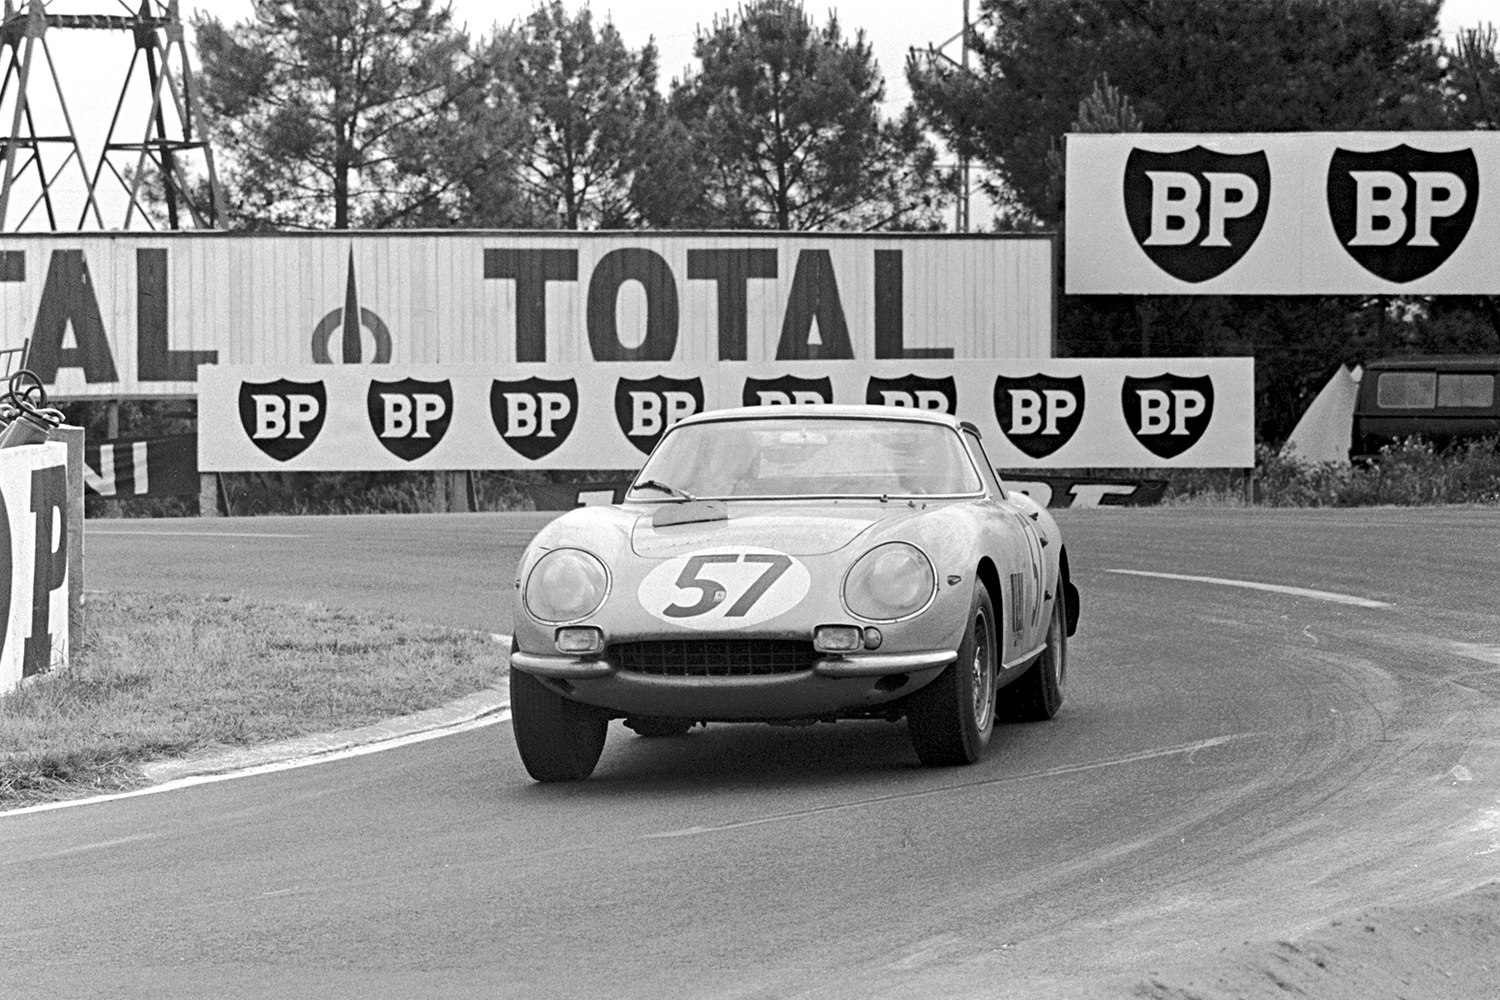 Ferrari 275 GTB/C 24 Hours of Le Mans 1966